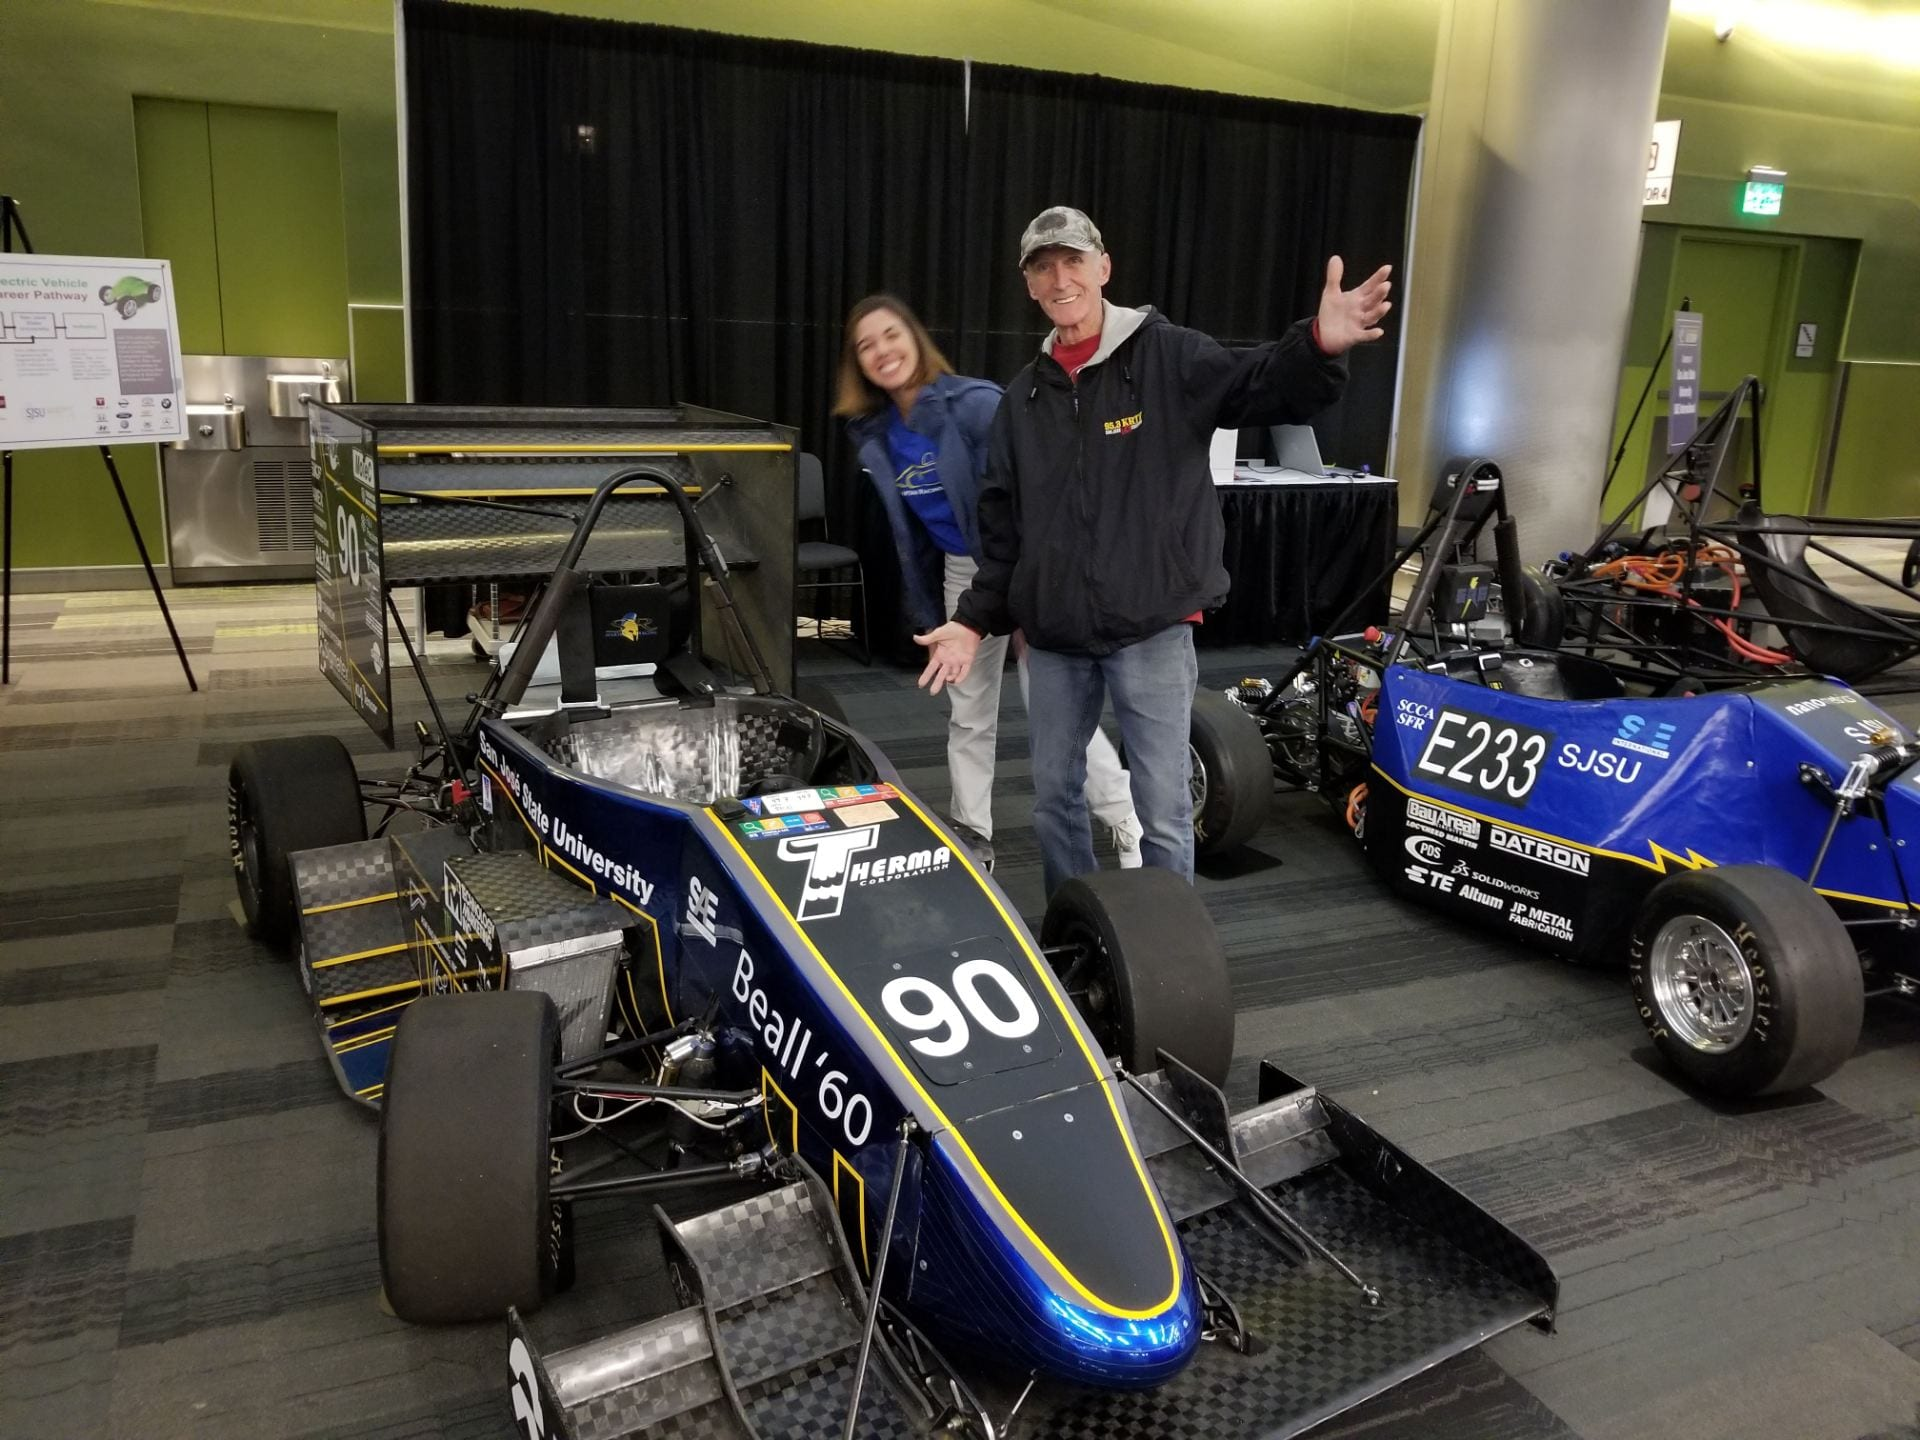 Visitors To The Silicon Valley Auto Show Look At Sjsu Formula Sae Racing Cars Photo